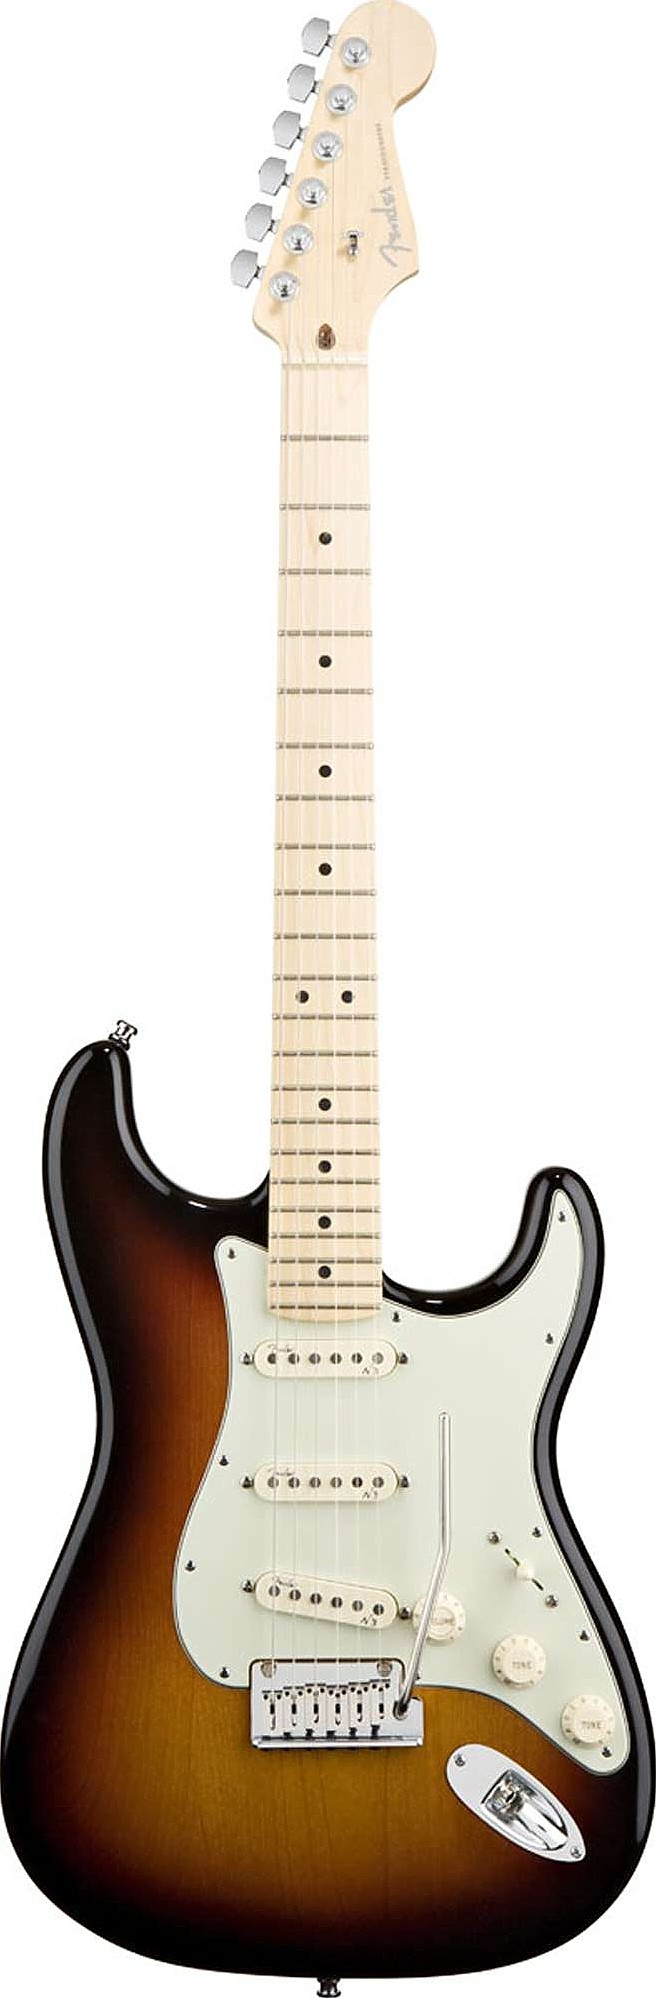 fender american deluxe stratocaster review. Black Bedroom Furniture Sets. Home Design Ideas